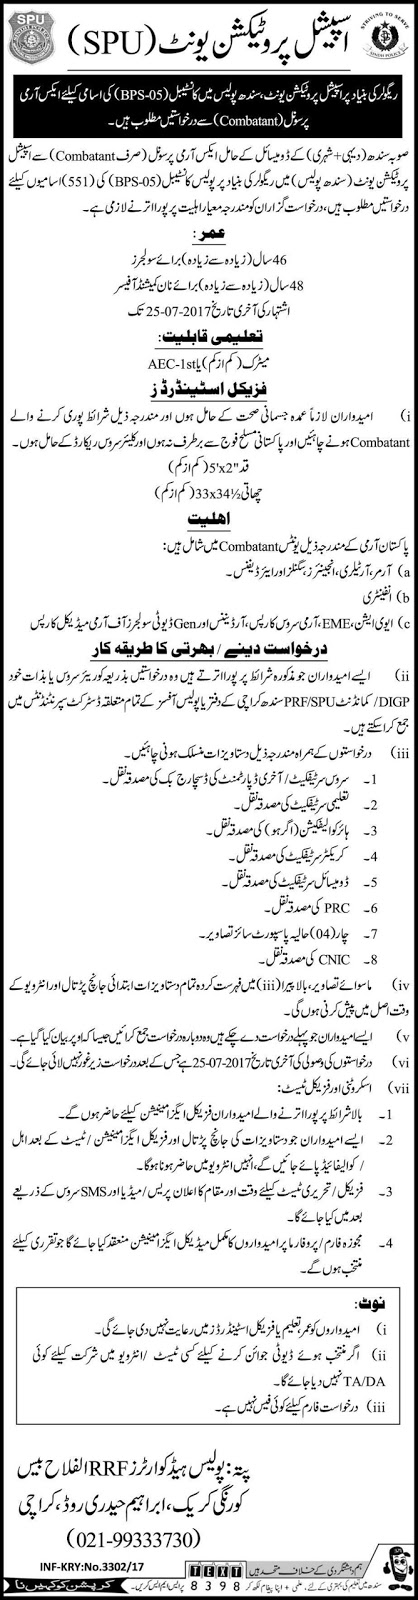 Constable Jobs in Police Special Protection Unit Sindh Jobs